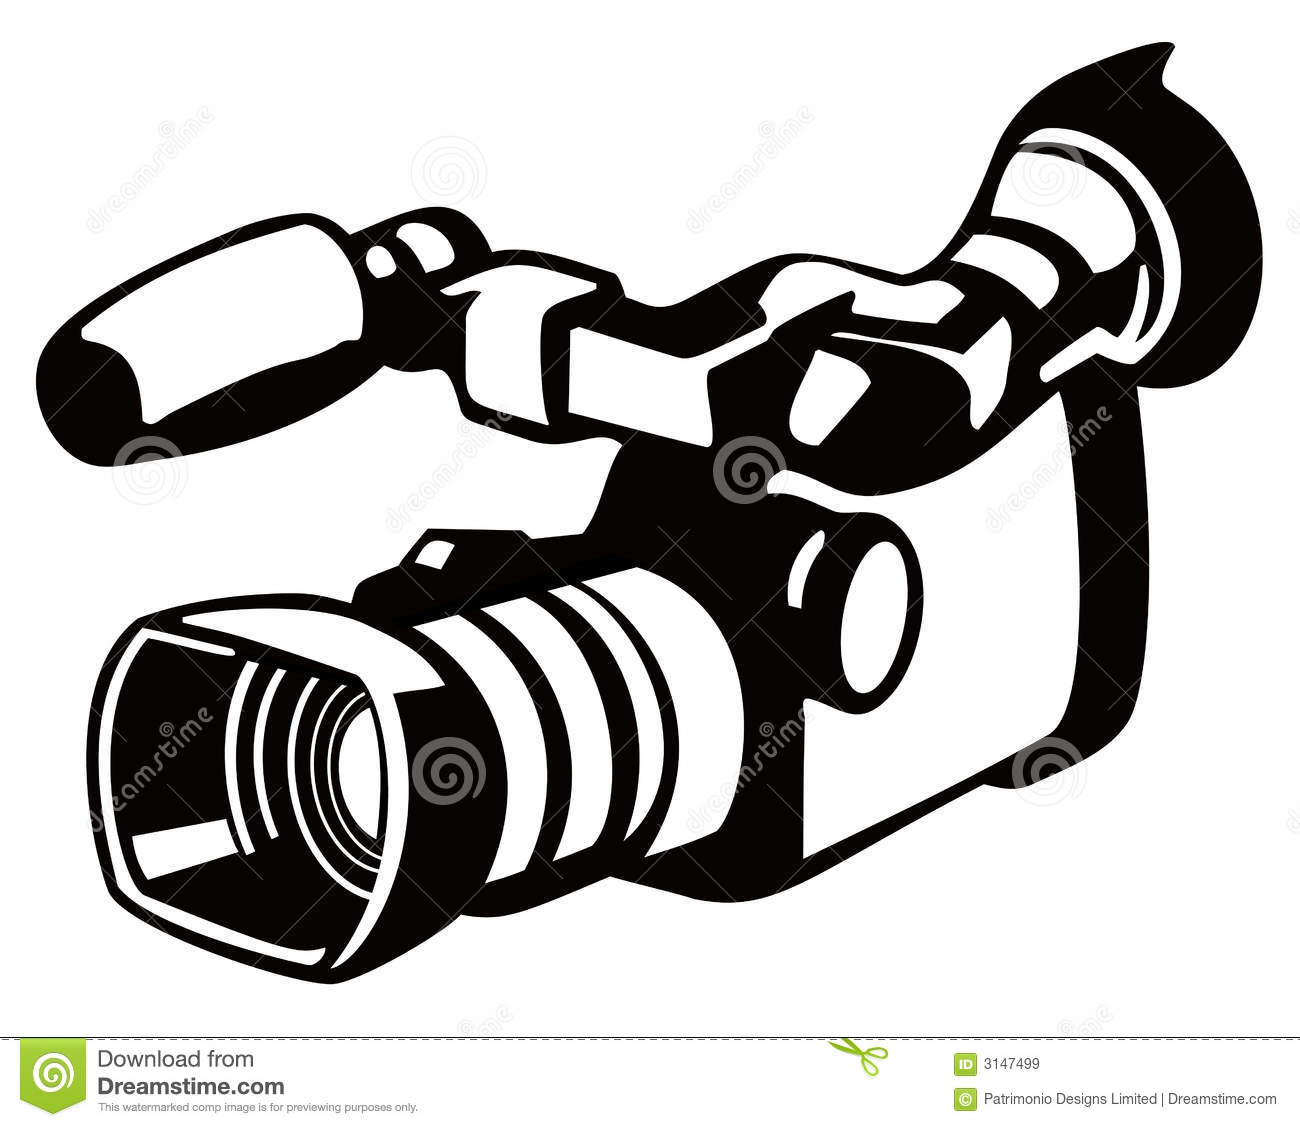 Recording camera clipart image royalty free download Movie Camera Clipart | Free download best Movie Camera ... image royalty free download